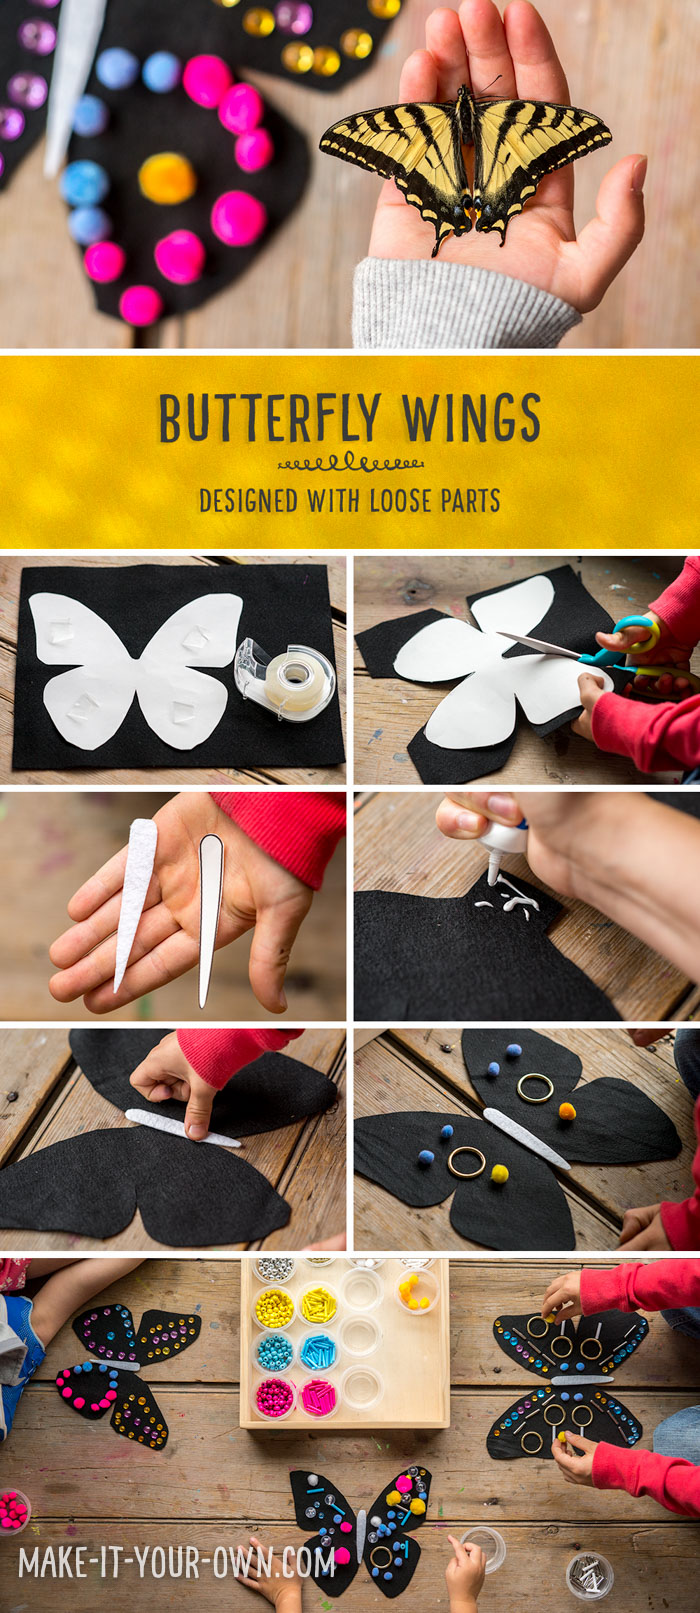 Design Butterfly Wings using Loose Parts!